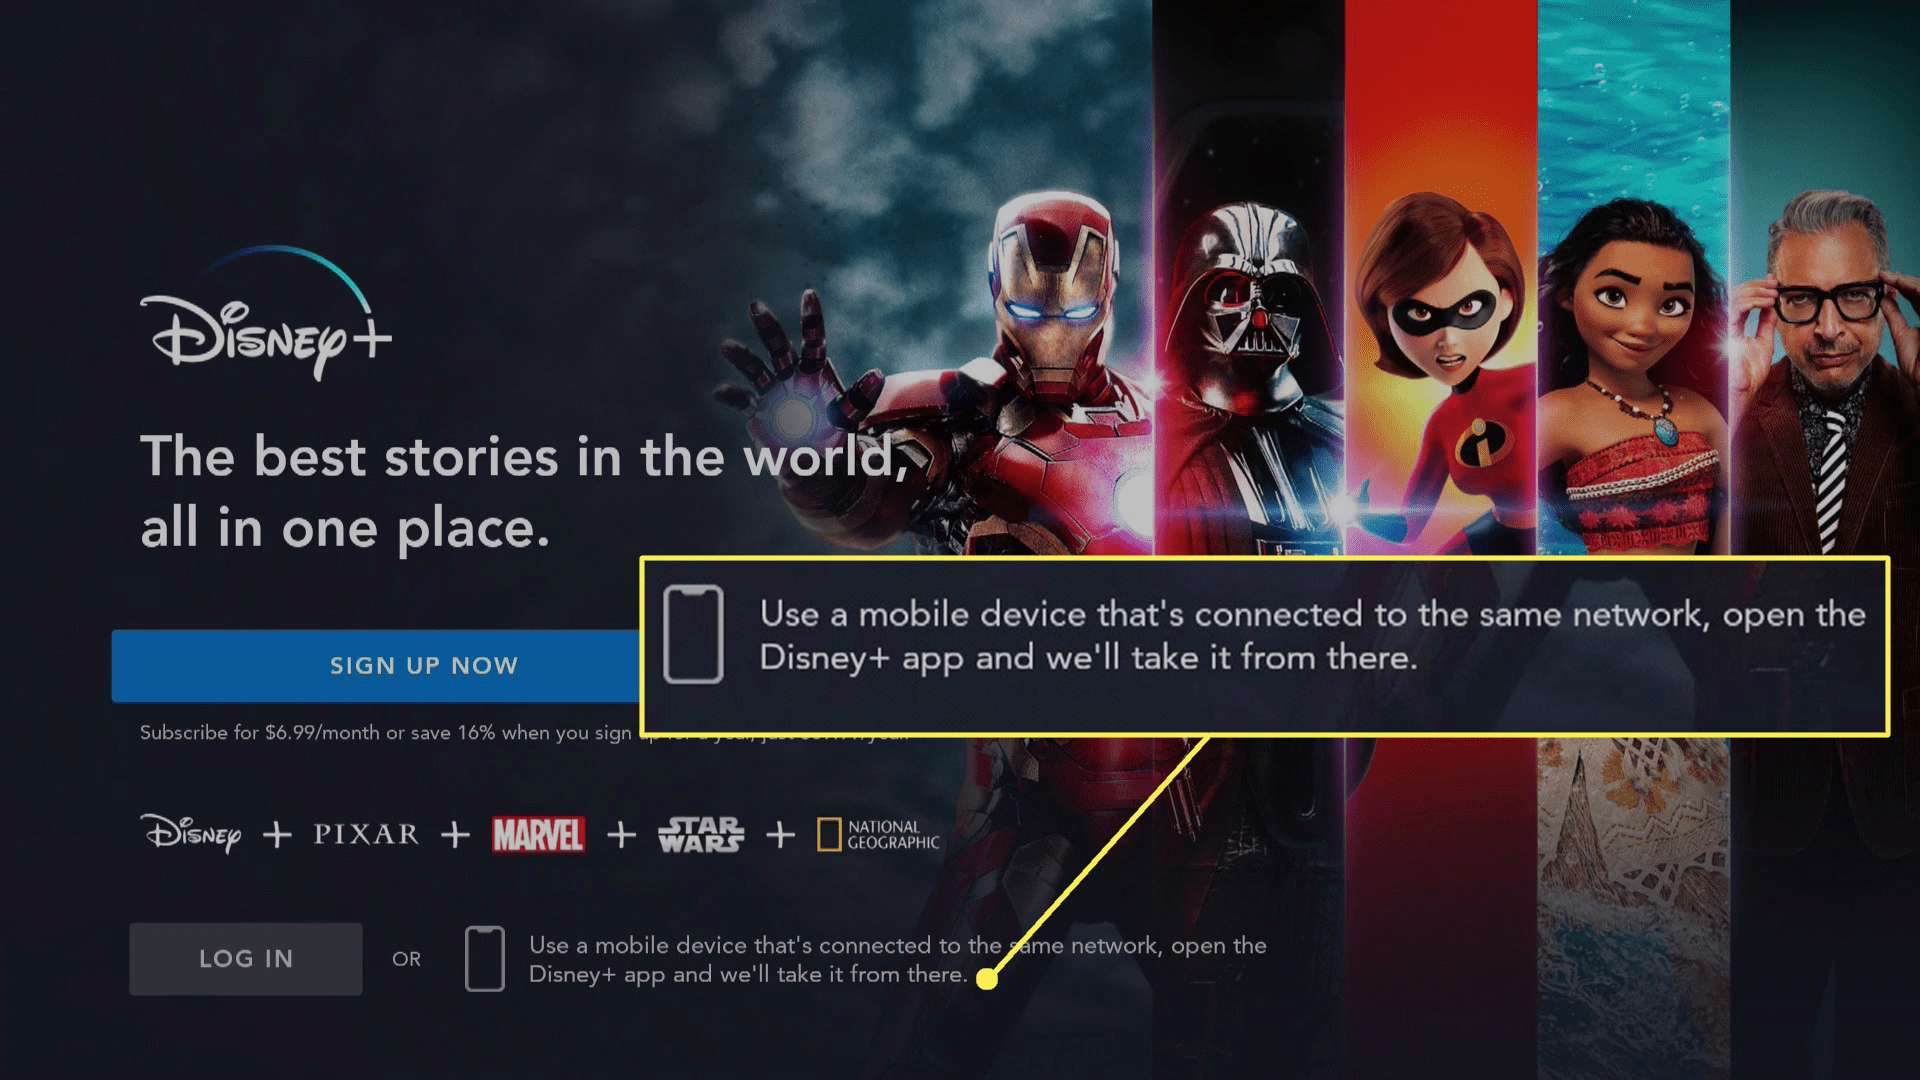 Disney Plus on Fire TV with instructions to open the Disney Plus app highlighted